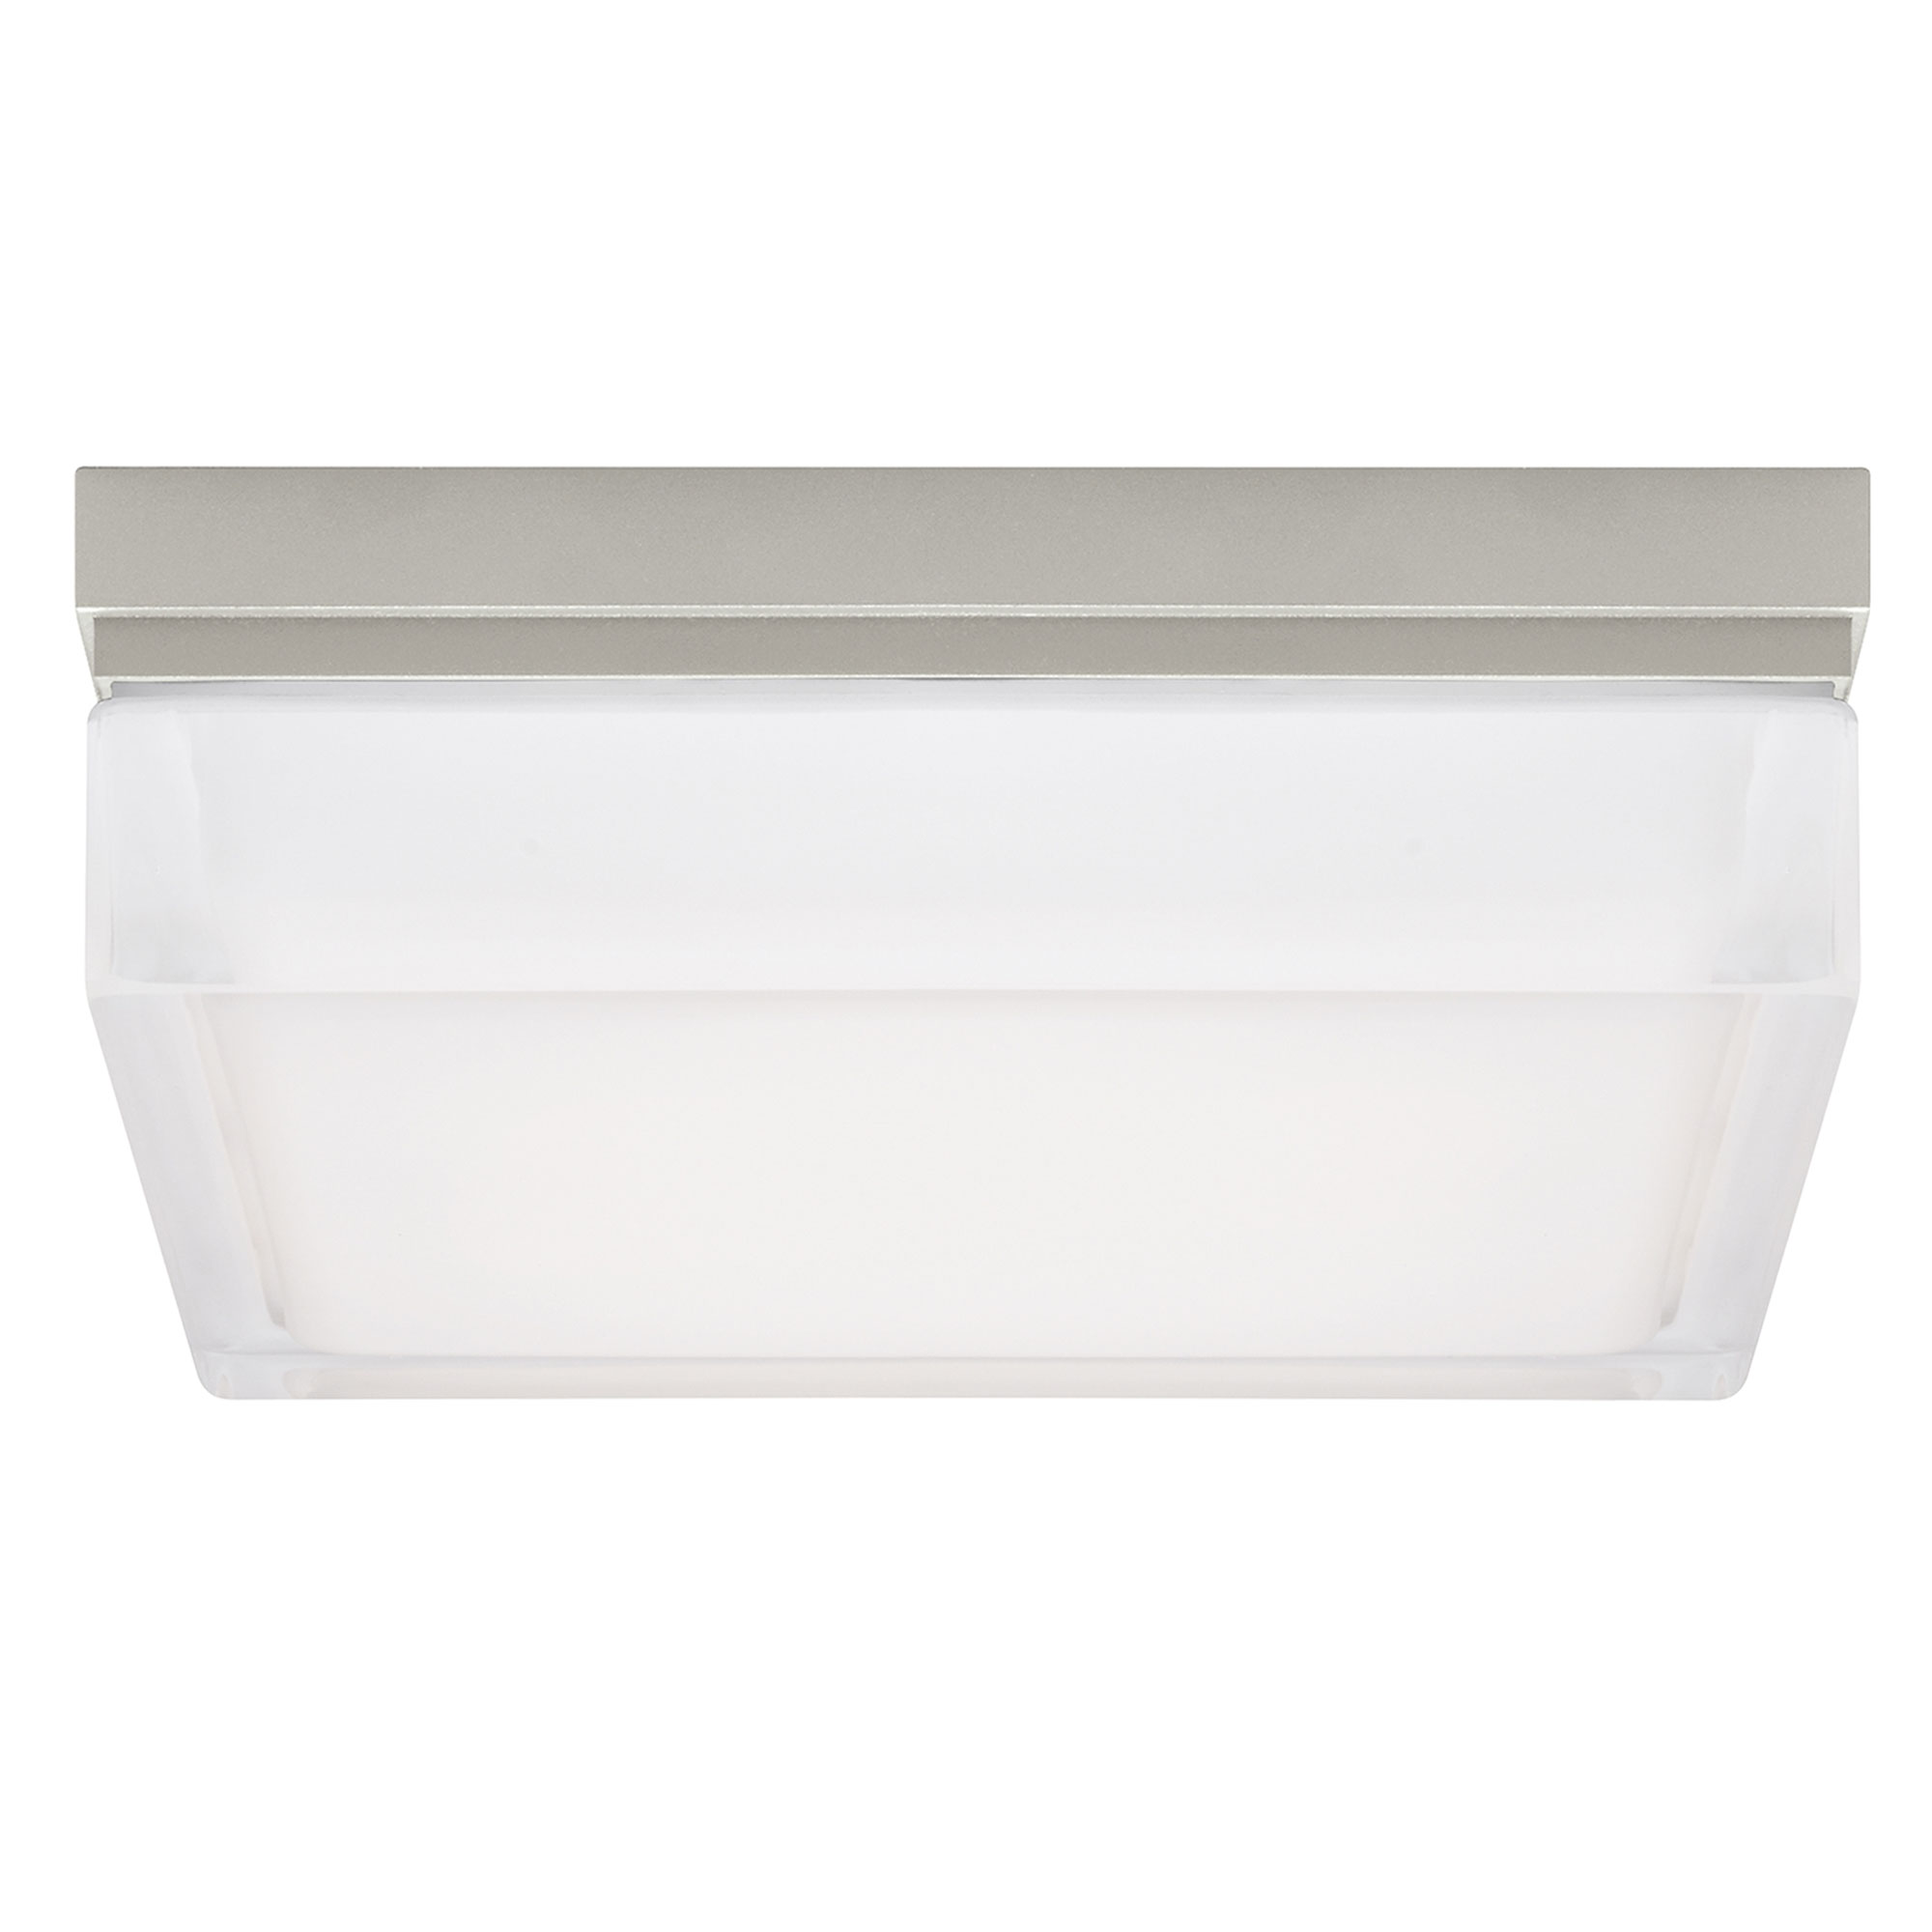 Boxie Led Wall Ceiling Light Fixture By Tech Lighting 700bxls